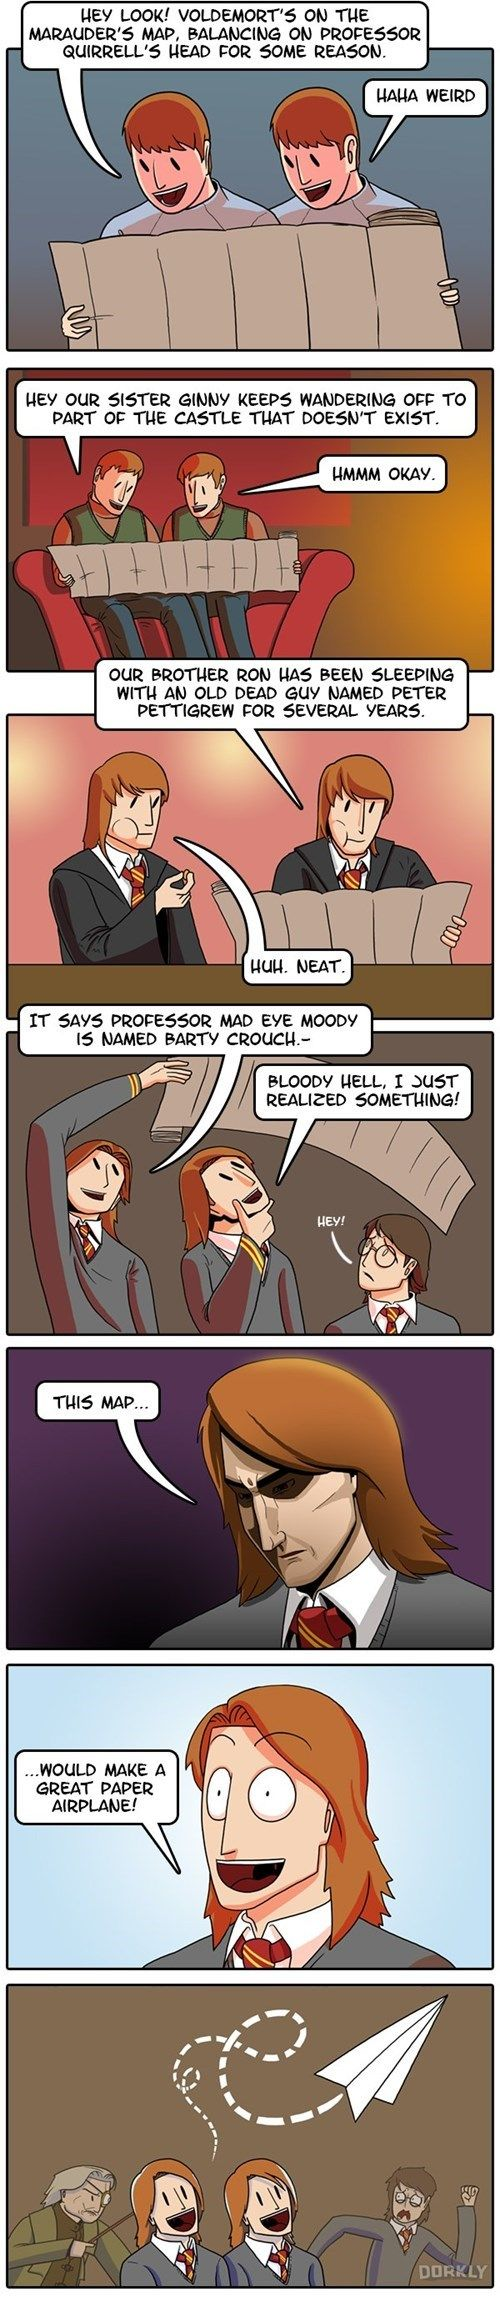 The Weasley Twins Could Have Been the Heroes of the Harry Potter Series